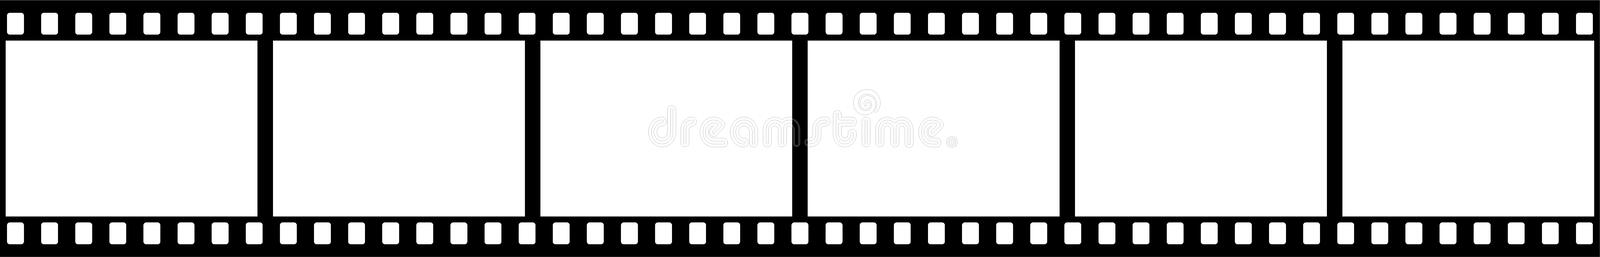 Film strip. Black and white vector illustration of film strip -  isolated on clean white background stock illustration